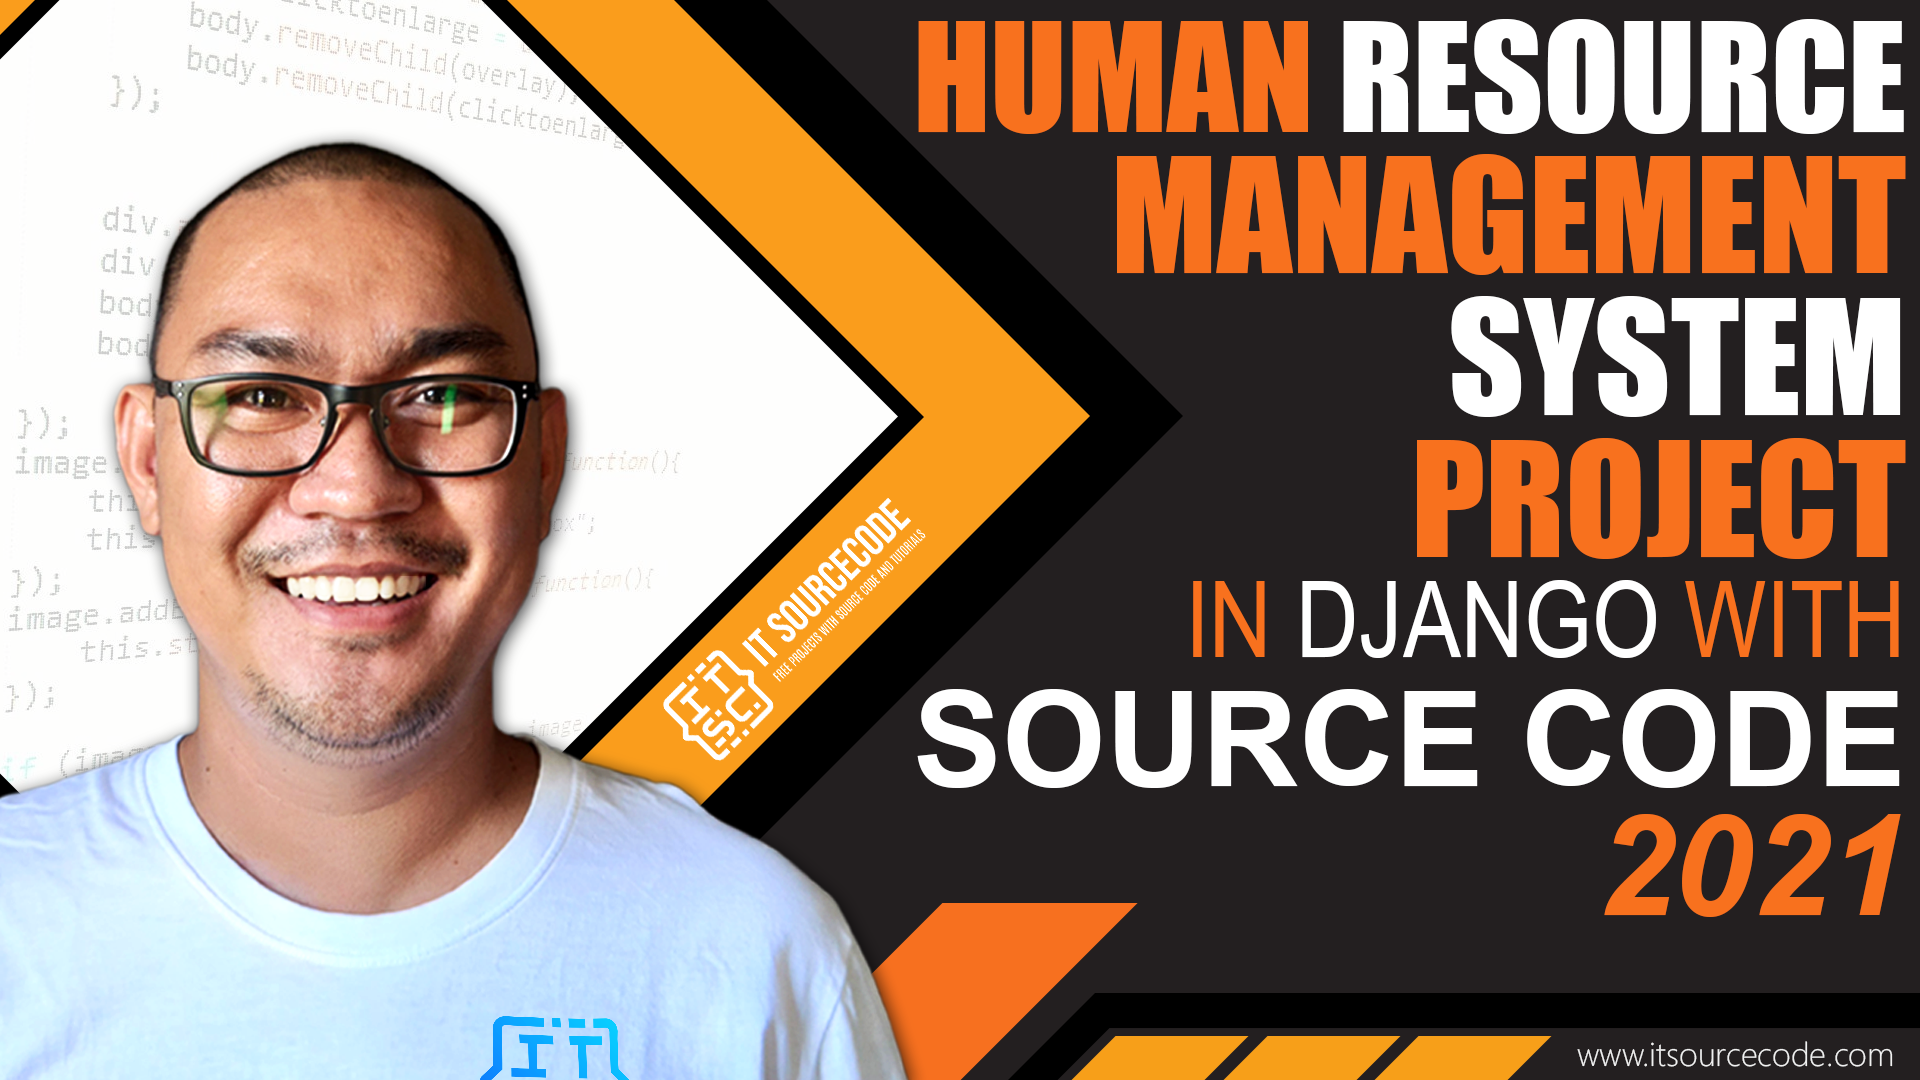 Human Resource Management System in Django with Source Code 2021